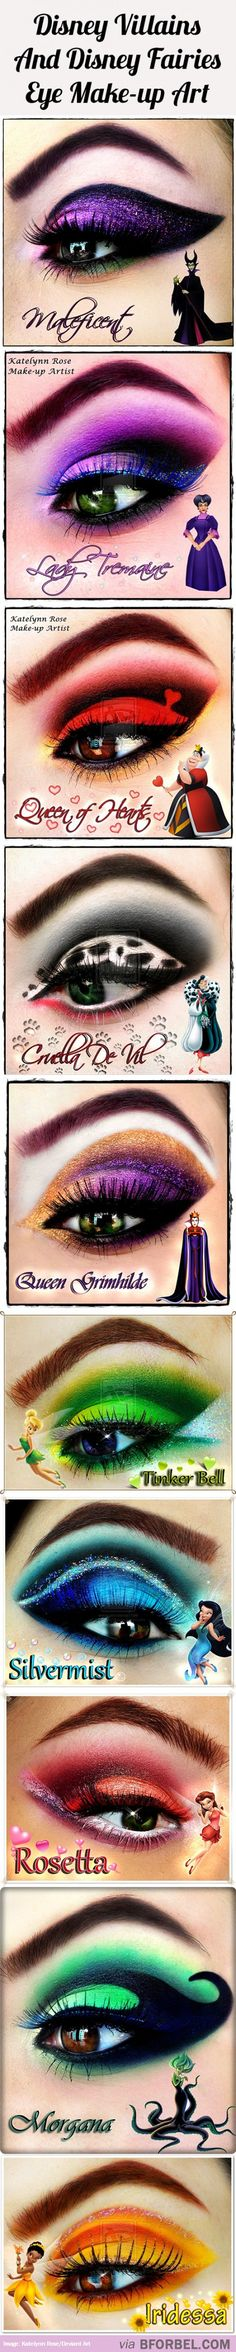 10 Disney Villains And Fairies Inspired Beautiful Eye Makeup...